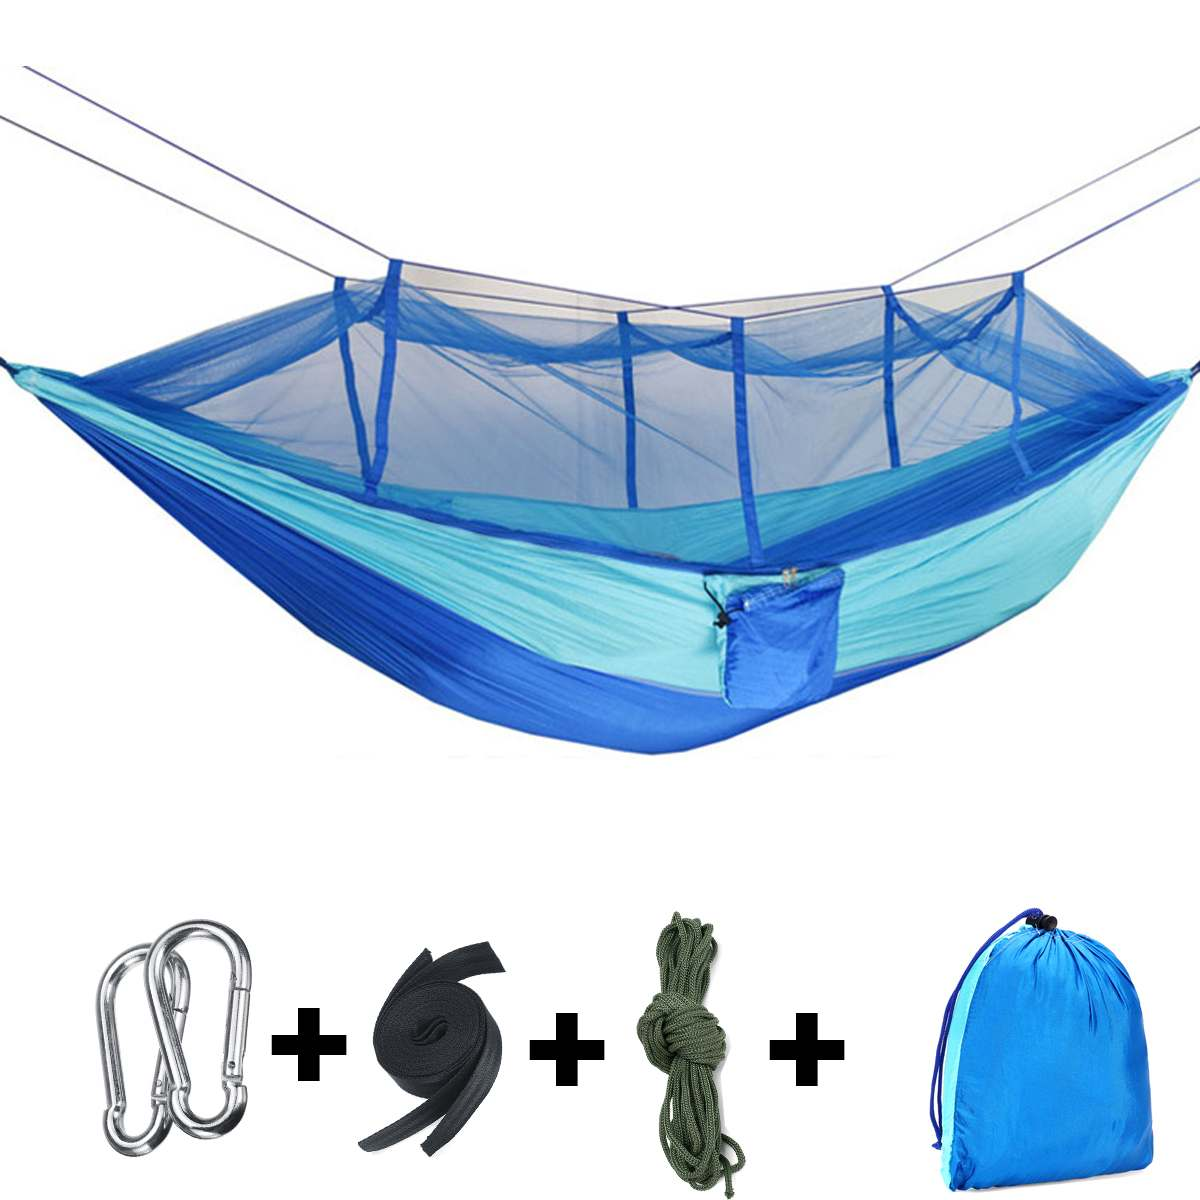 Portable Outdoor Camping Hammock With Mosquito Net Outdoor Travel Camping Picnic Adult Single Double Person Hanging Hammock Bed